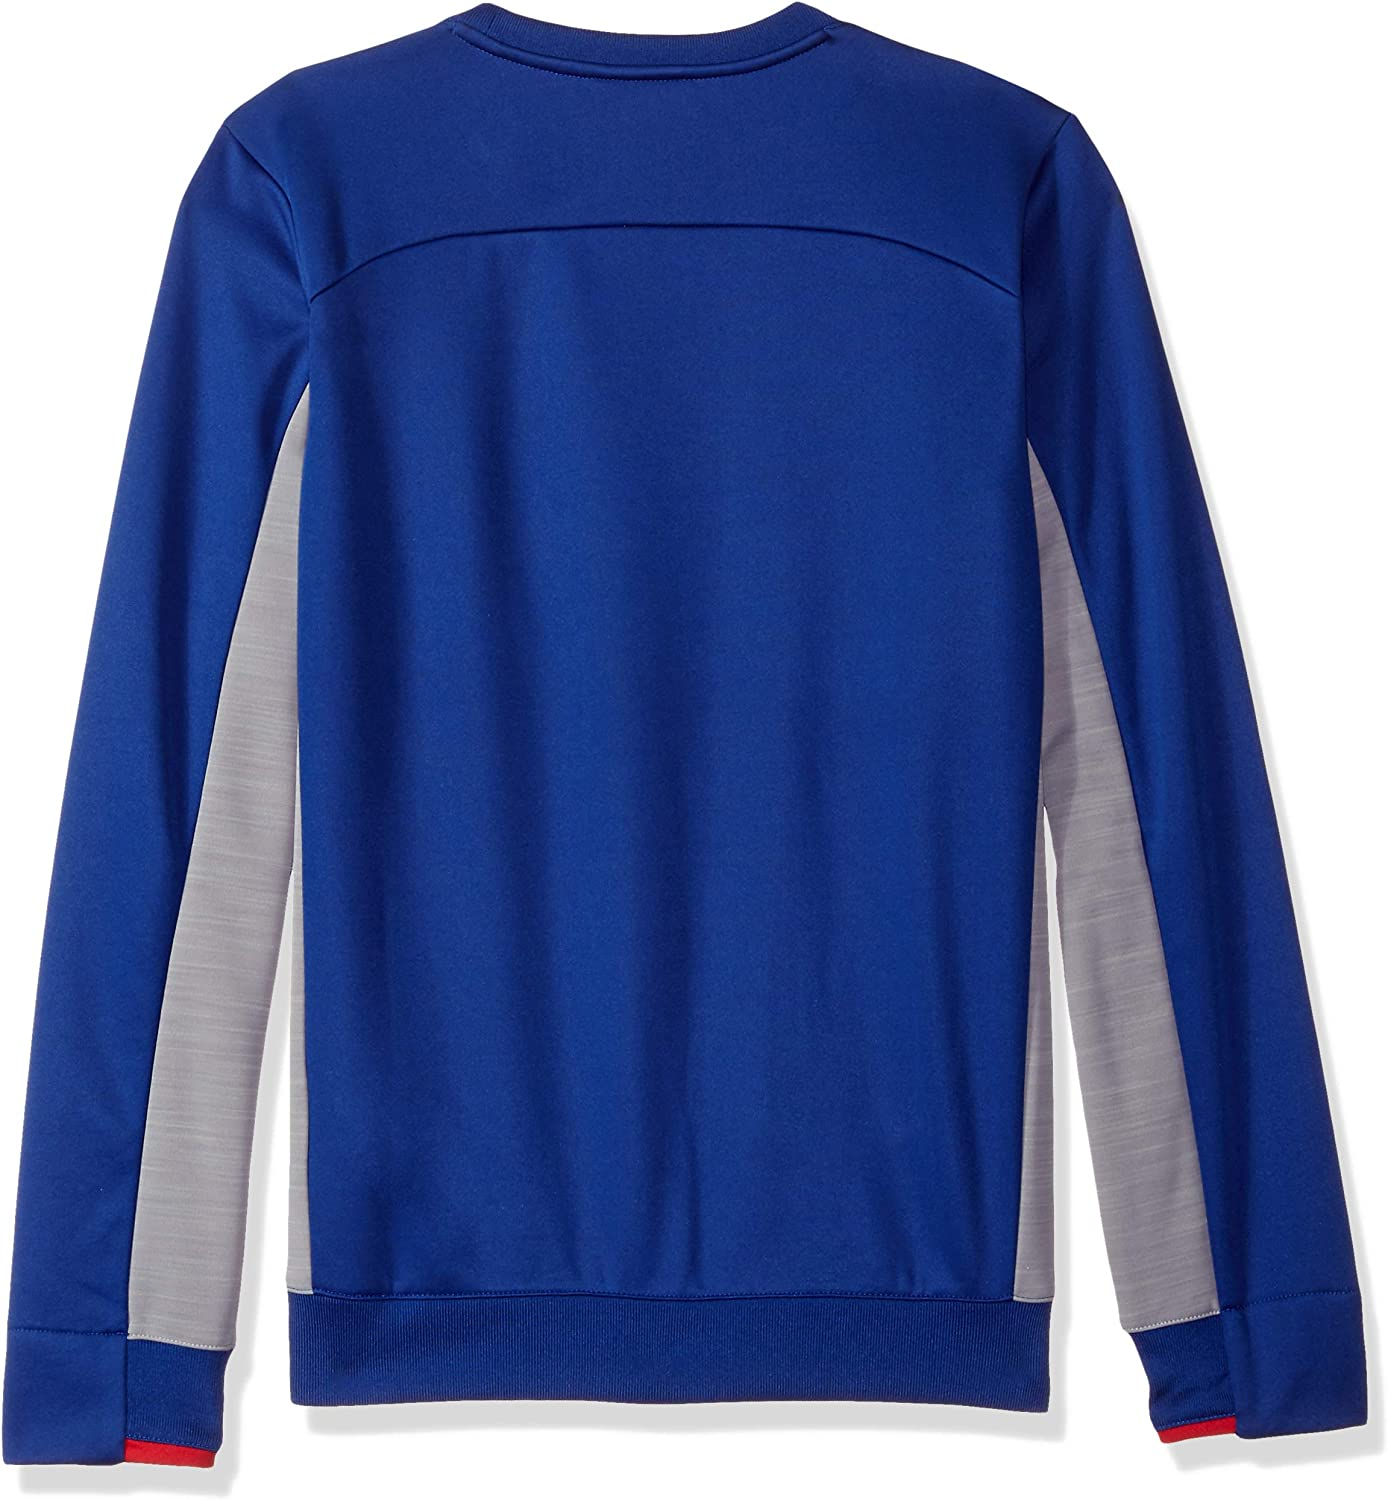 18 Youth X-Large Blue NBA by Outerstuff NBA Youth Boys Philadelphia 76ers Lay-up Long Sleeve Performance Pullover